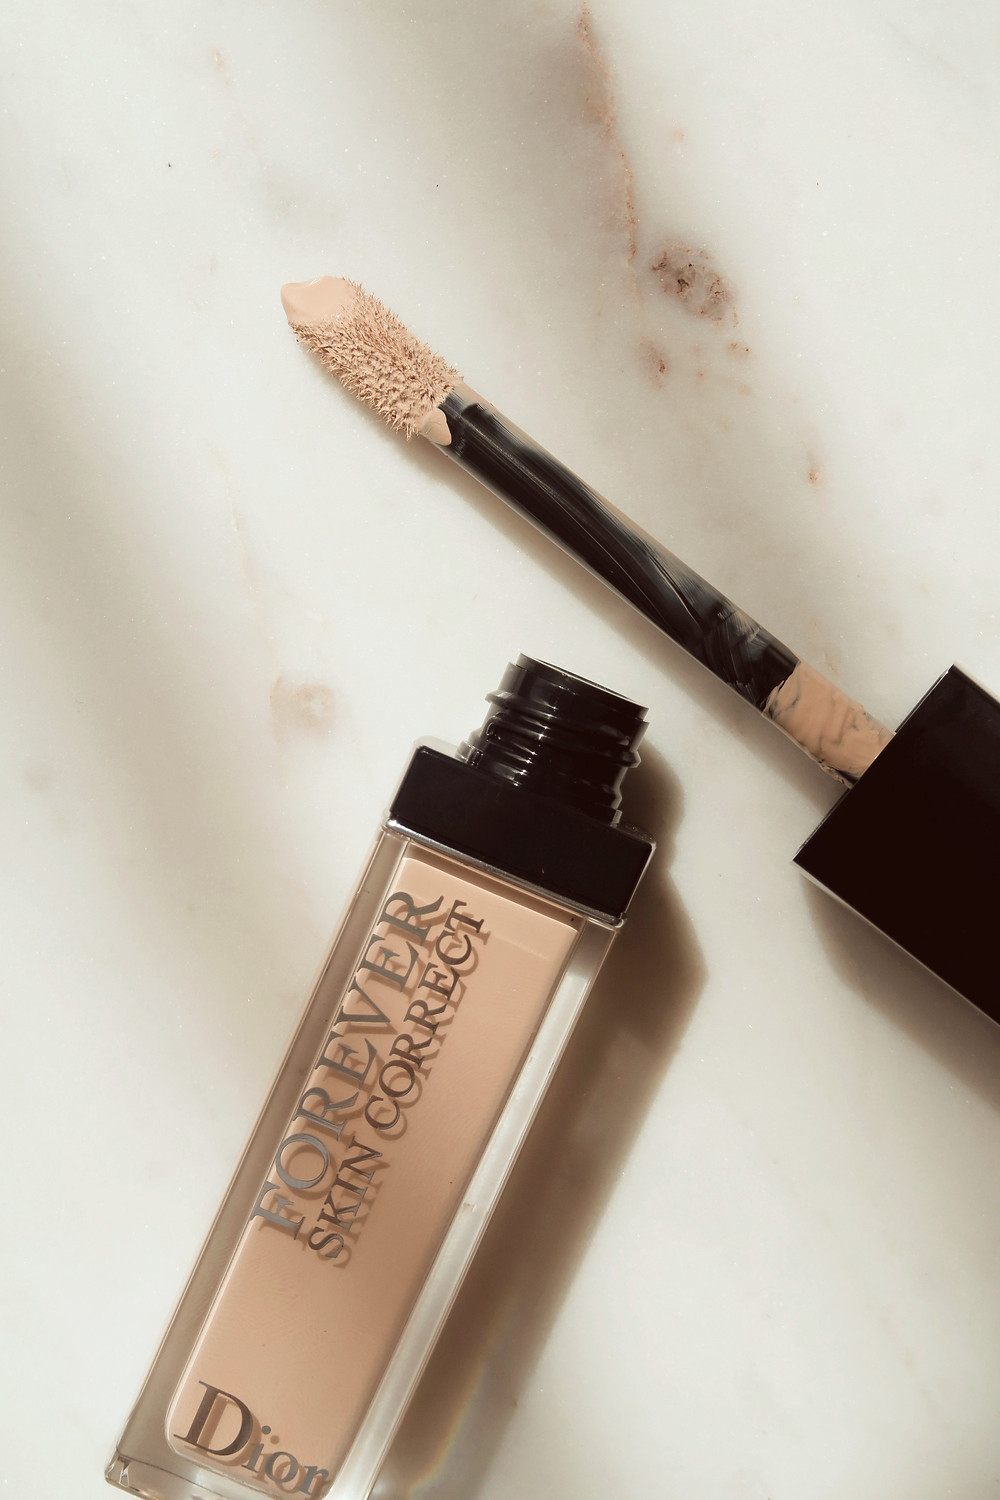 Dior Forever Correct Concealer Review